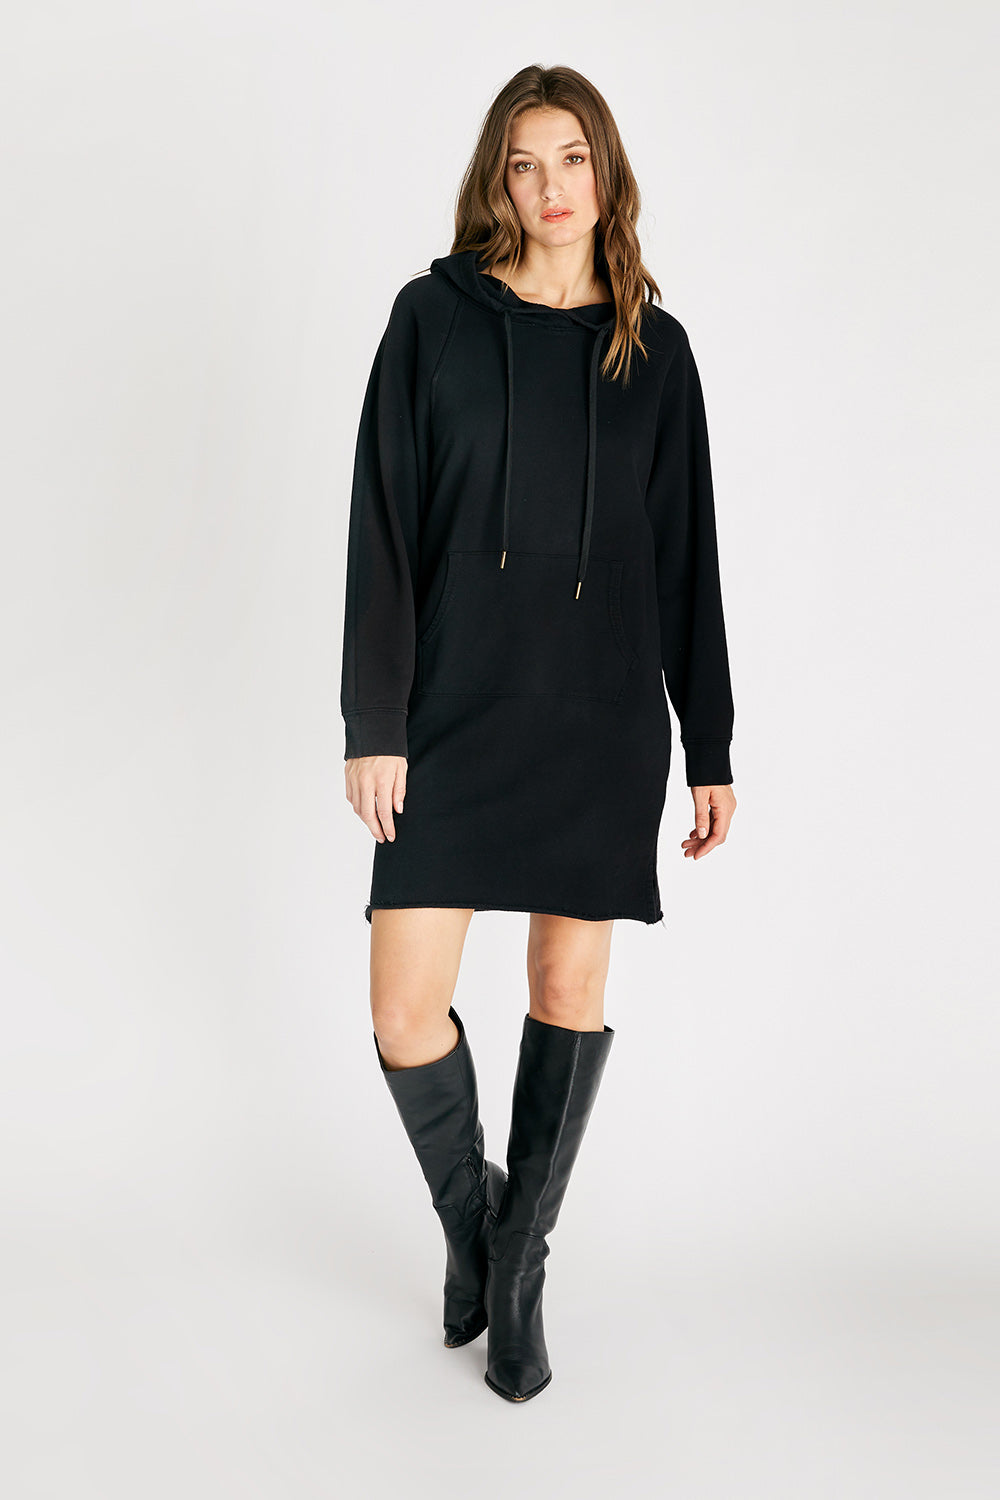 Layla Hooded Dress - Black